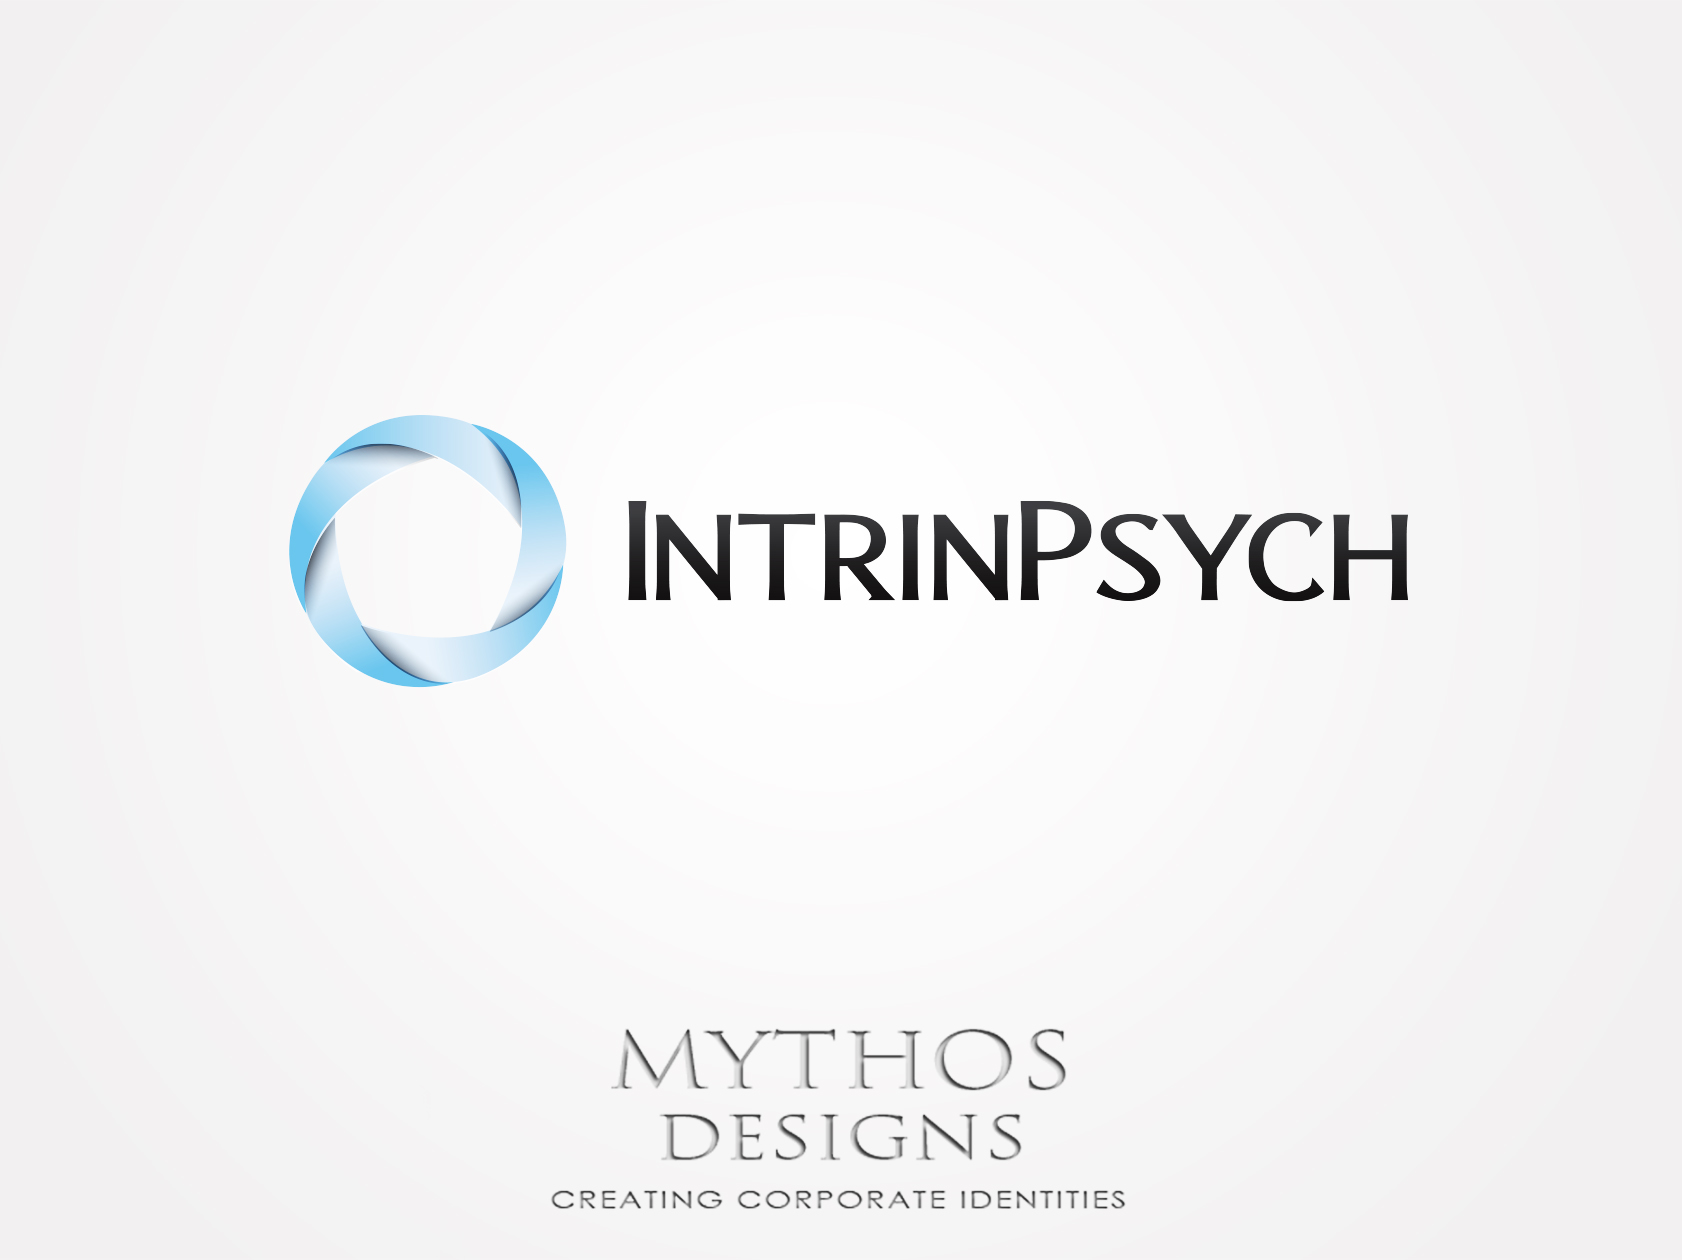 Logo Design by Mythos Designs - Entry No. 144 in the Logo Design Contest New Logo Design for IntrinPsych.